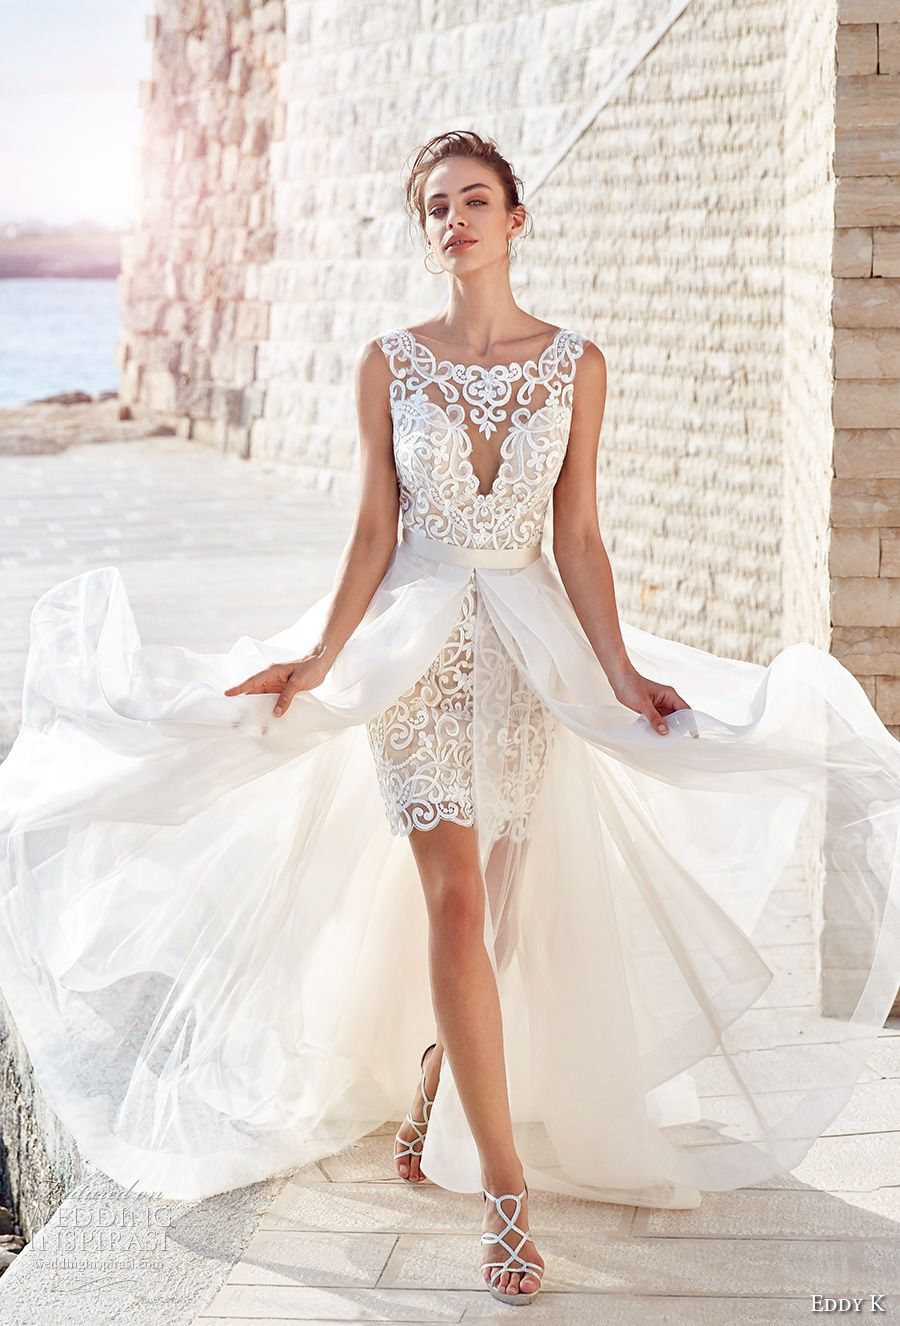 Eddy K 2018 Bridal Sleeveless Bateau Sweetheart Neckline Full Embellishment Glamorous Above The Knee Miniskirt Short Wedding Dress A Line Overskrit